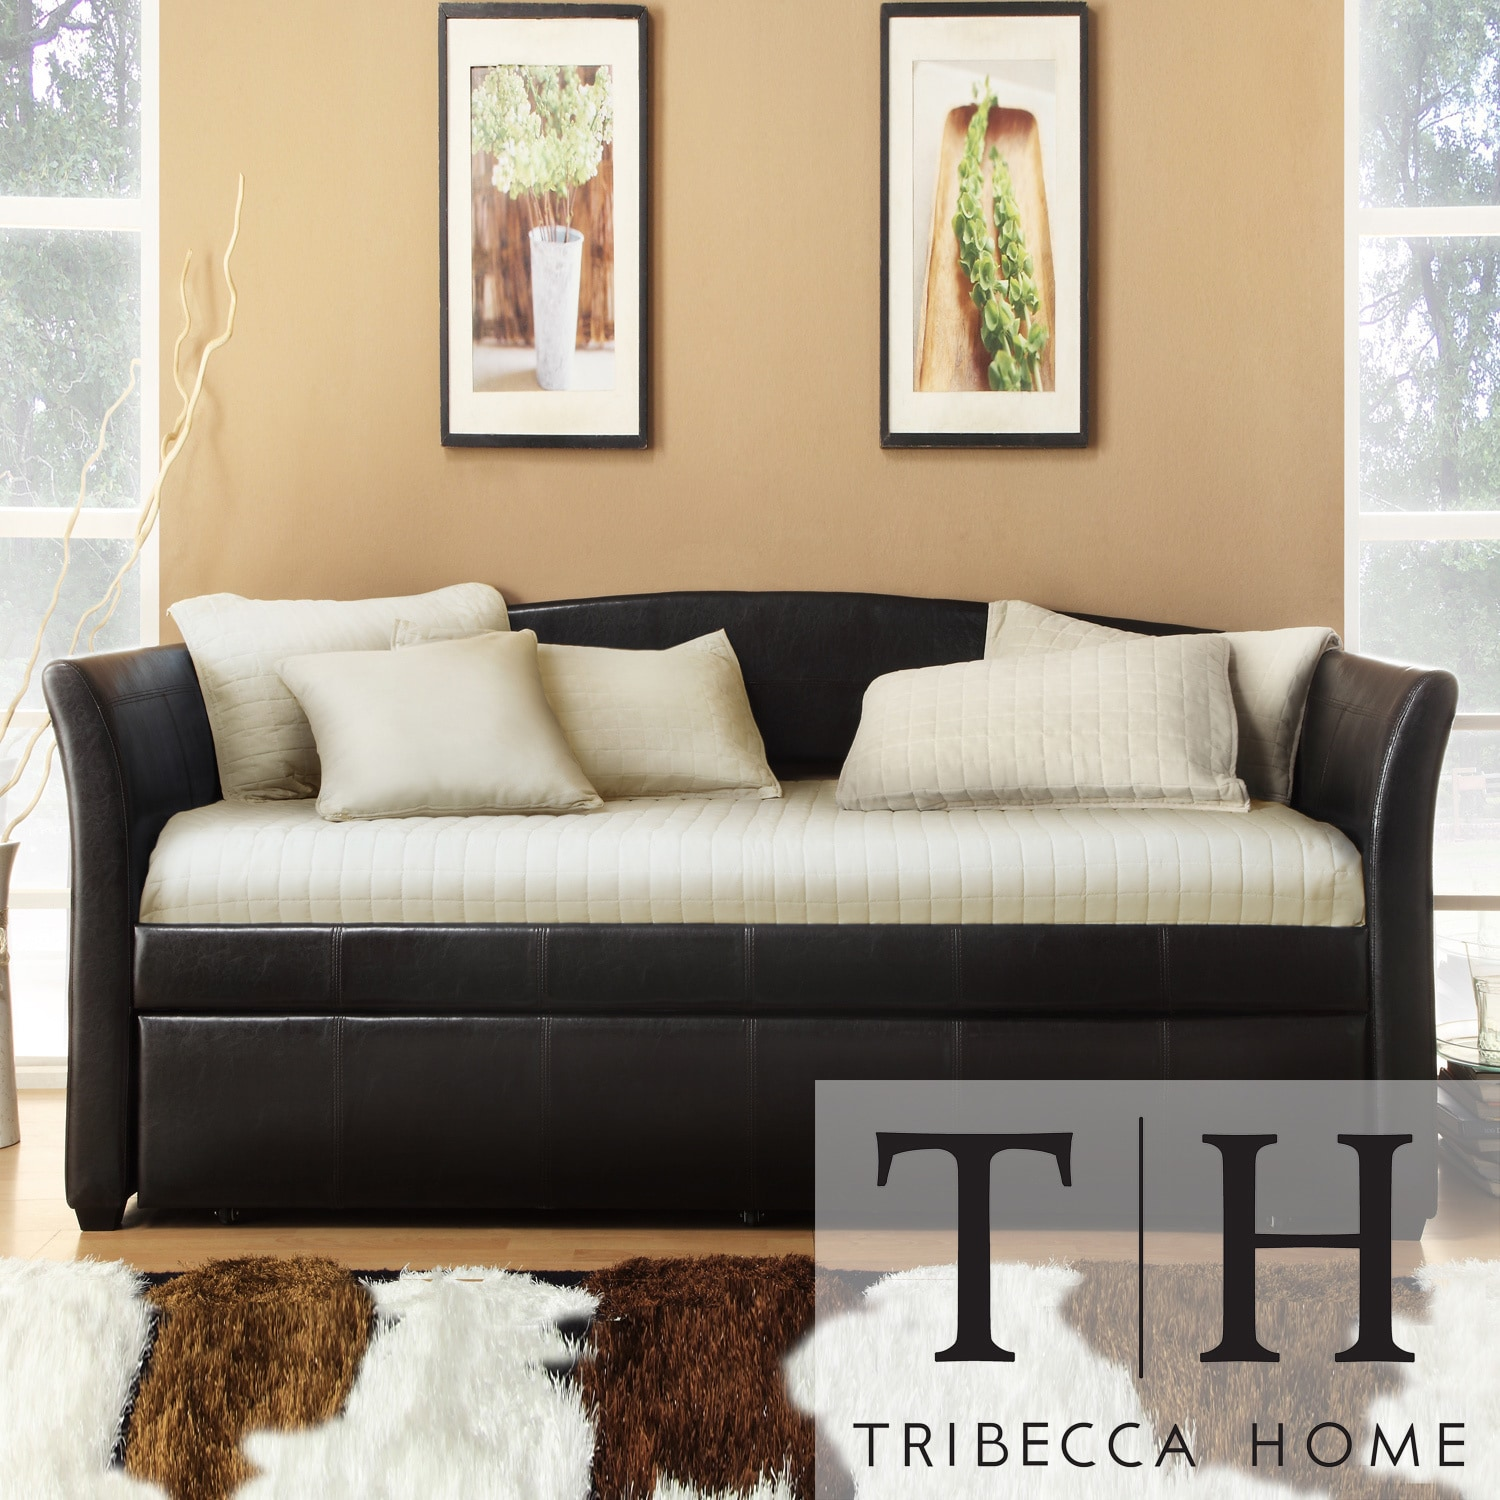 TRIBECCA HOME Deco Dark Brown Faux Leather Daybed with Trundle at Sears.com